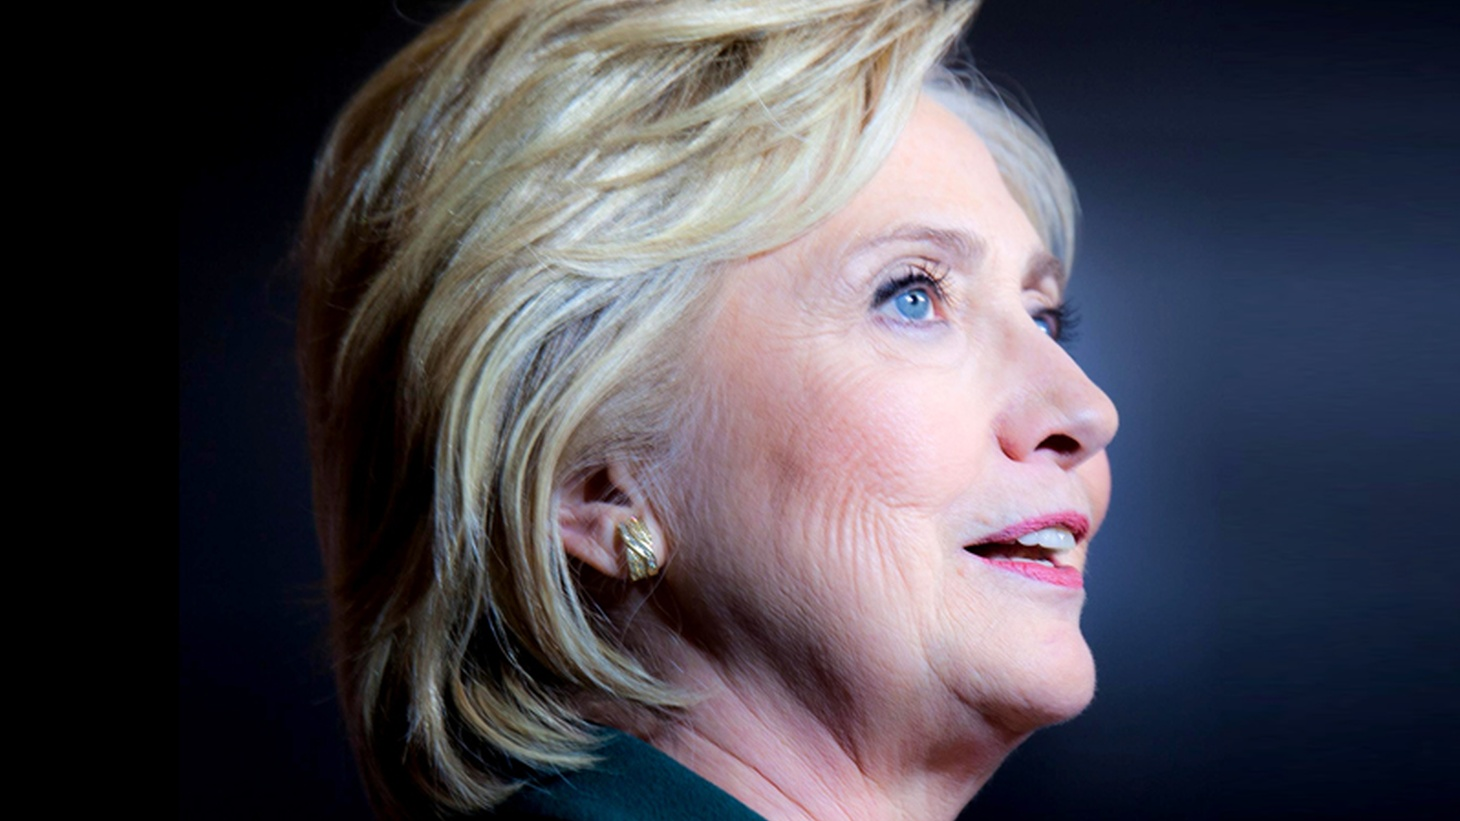 If elected, Hillary Clinton would be America's first woman president — a historic prospect she downplayed in her campaign in 2008. Not any more. We get a profile.